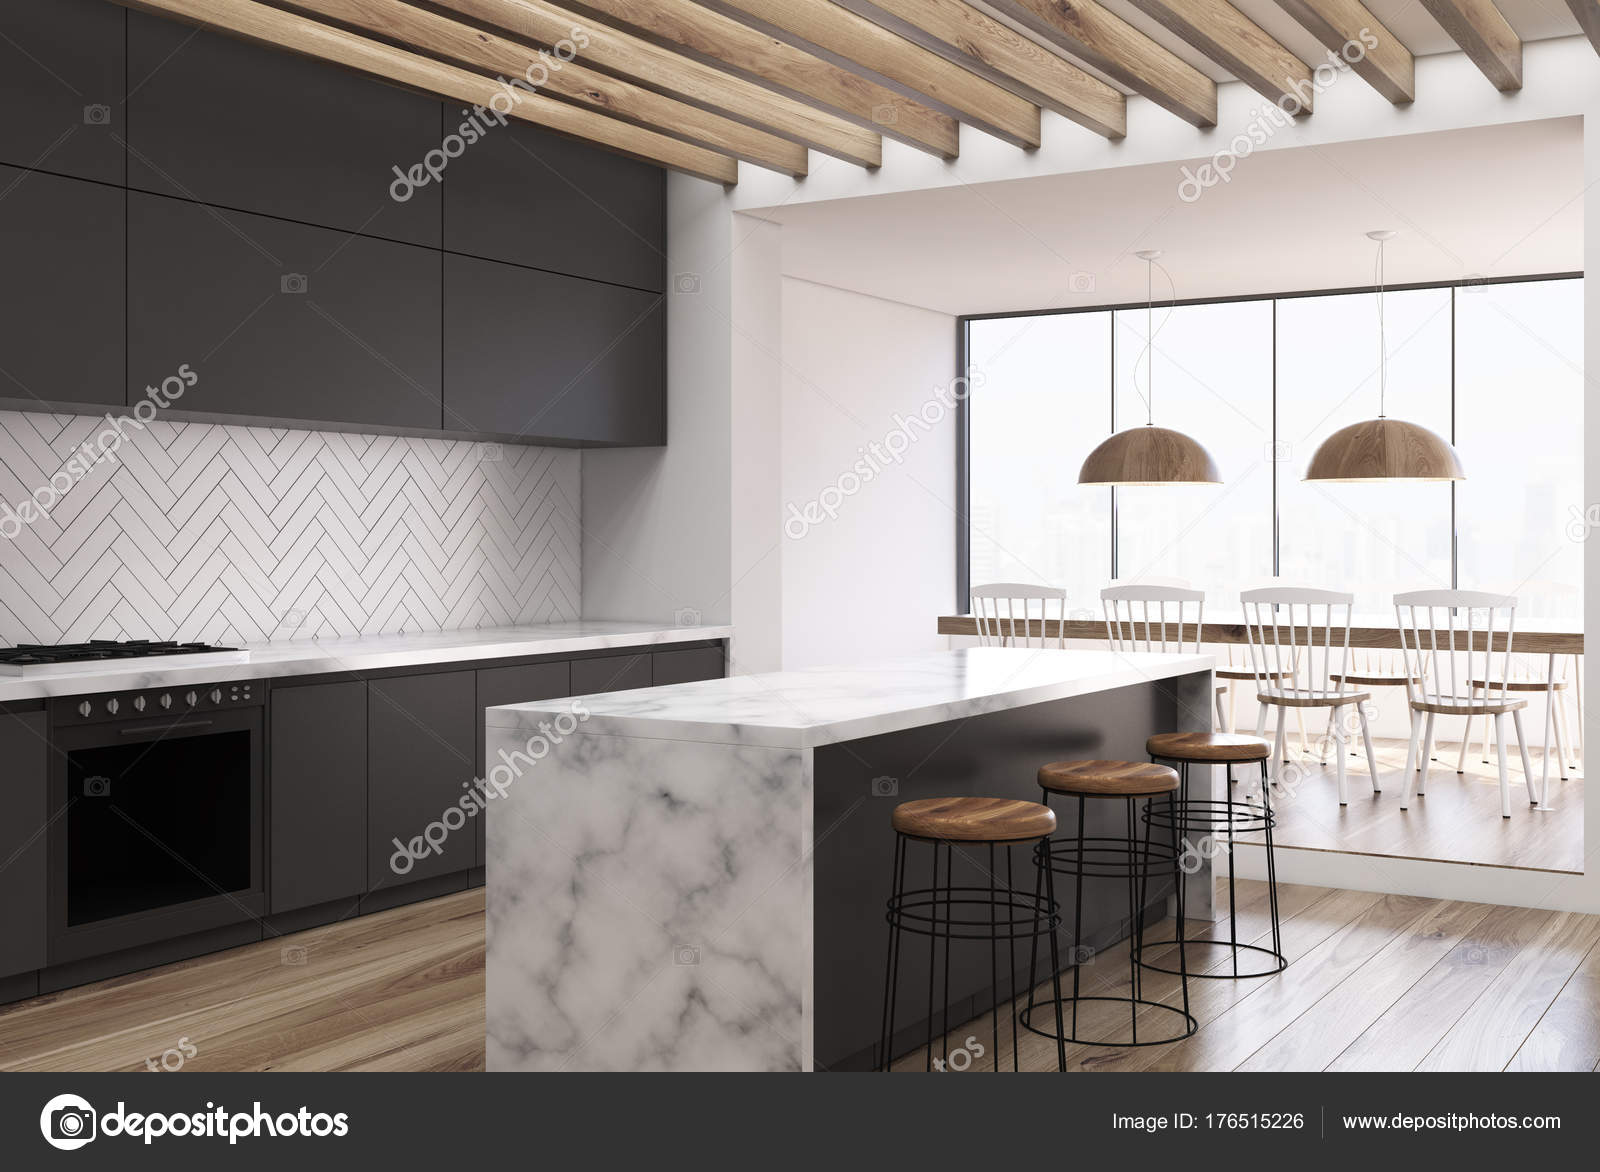 Side View Of A White Wooden Kitchen With A White Marble Bar, Black  Countertops And A Dining Room Table With Chairs. 3d Rendering Mock Up U2014  Photo By ...